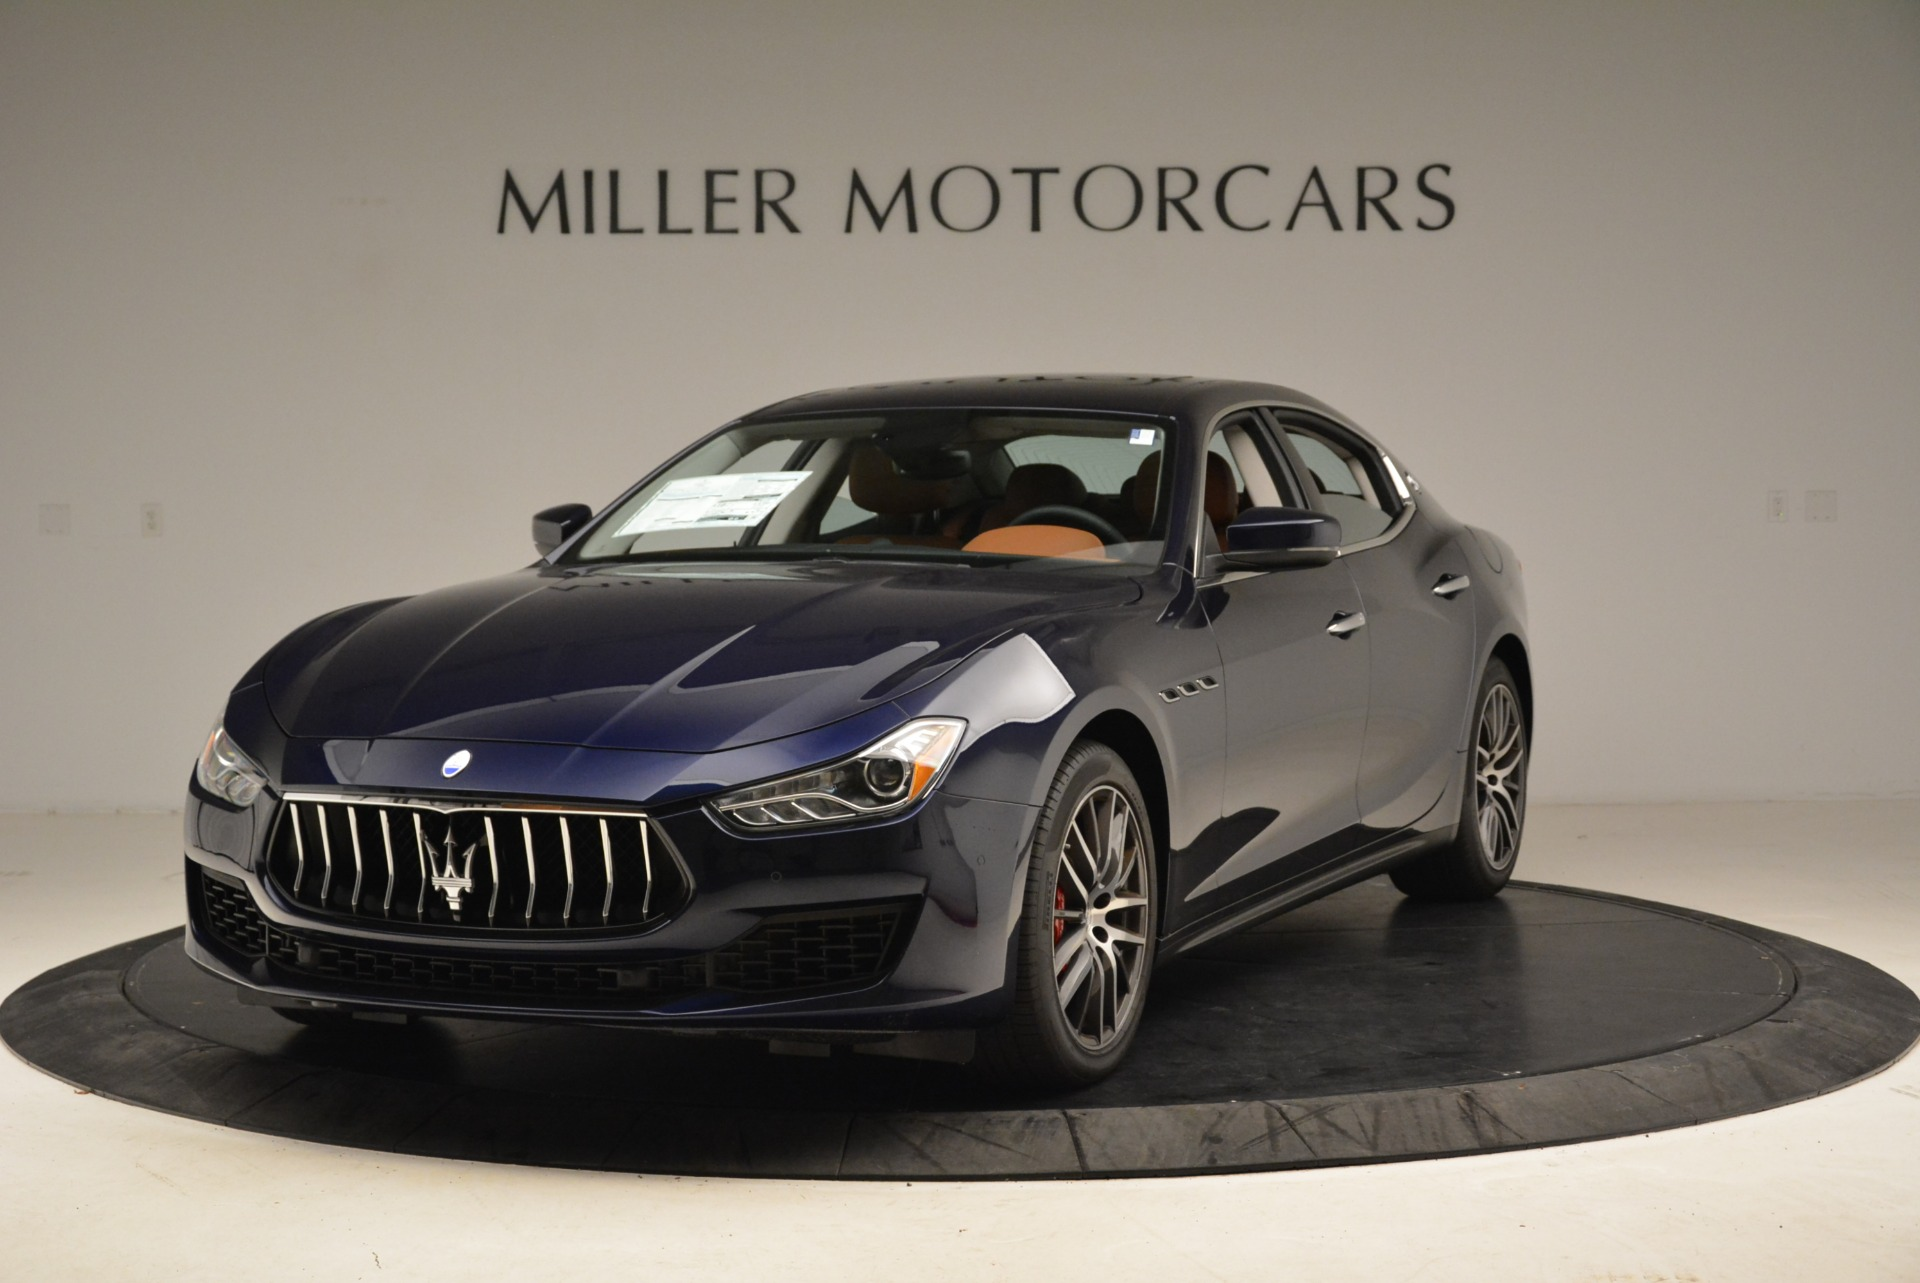 Used 2019 Maserati Ghibli S Q4 for sale $61,900 at Maserati of Greenwich in Greenwich CT 06830 1